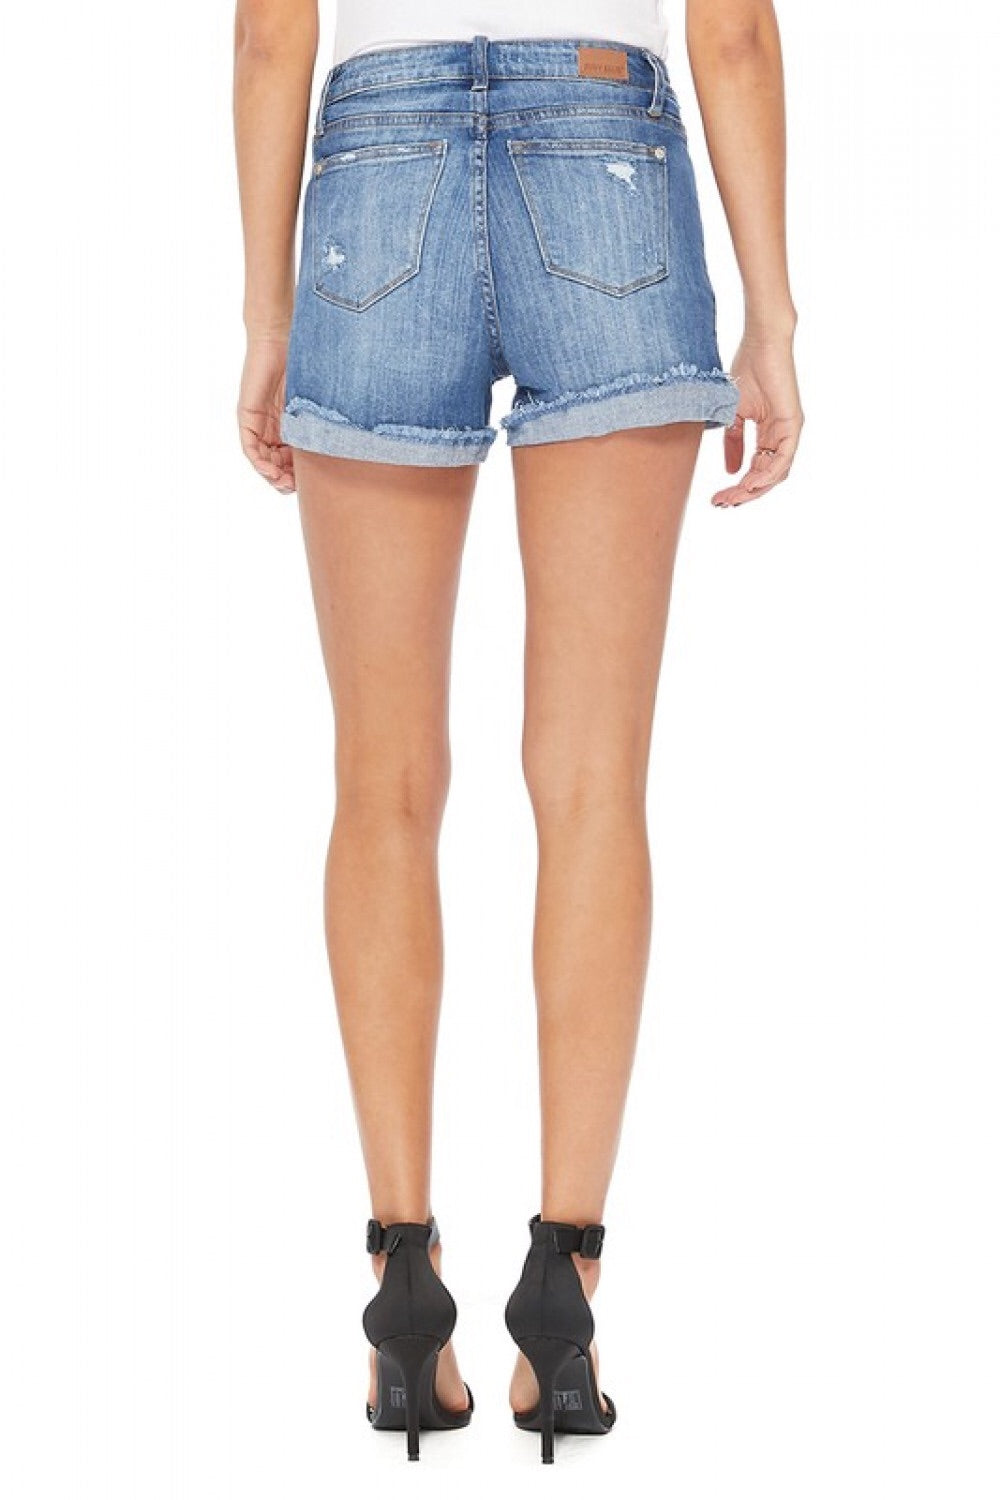 Judy Blue Denim Cuff Shorts